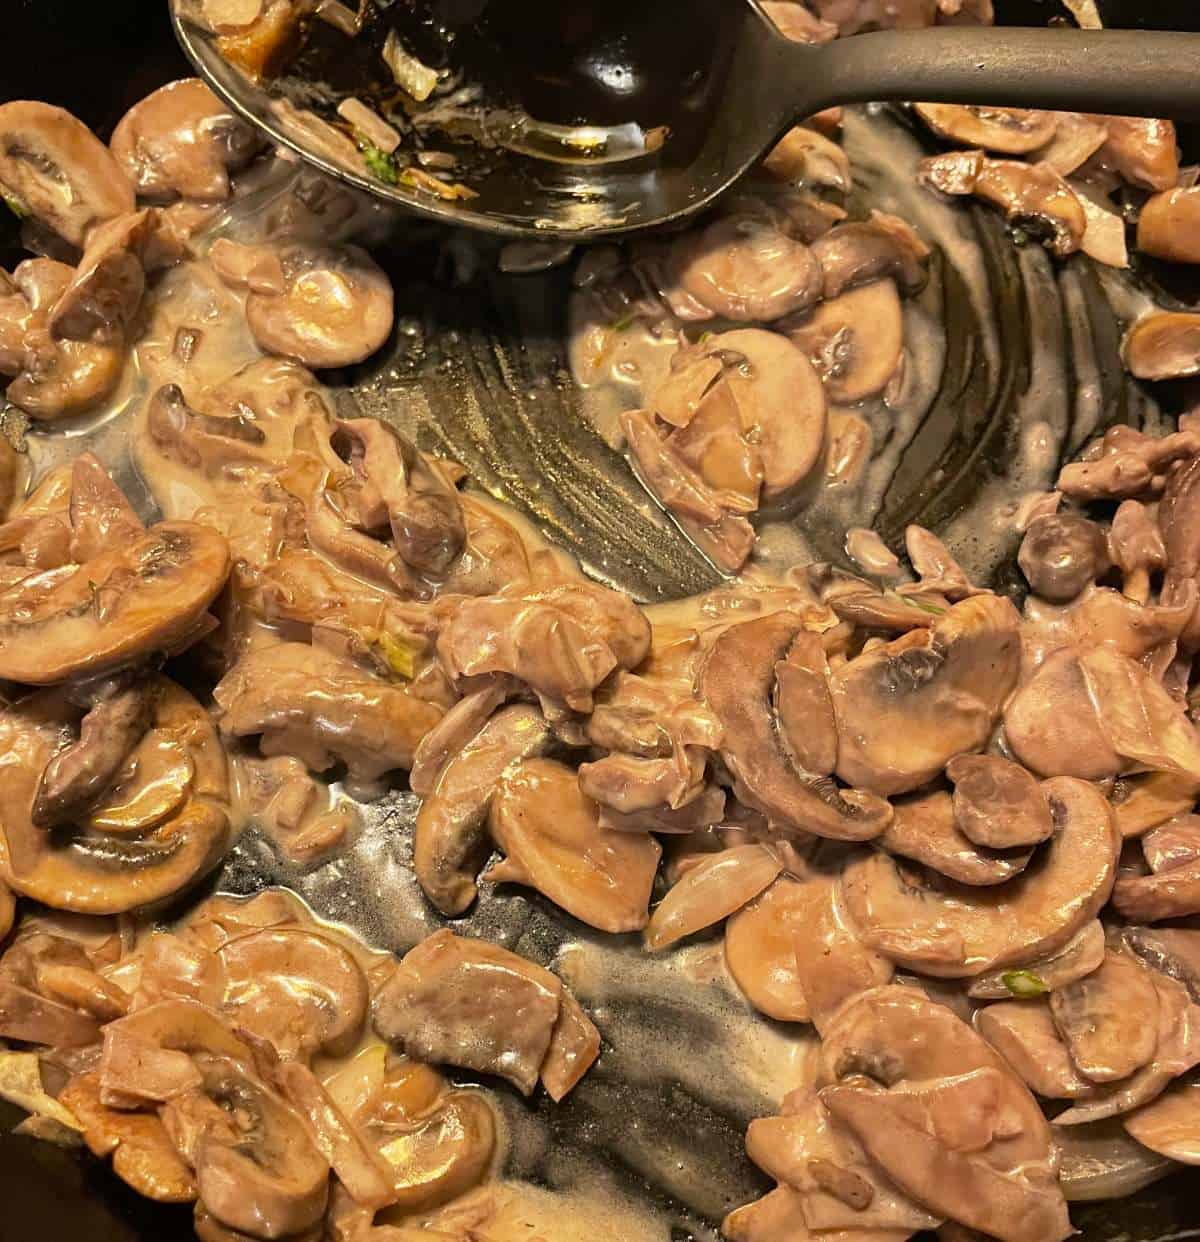 mushrooms with cream sauce in a black skillet.